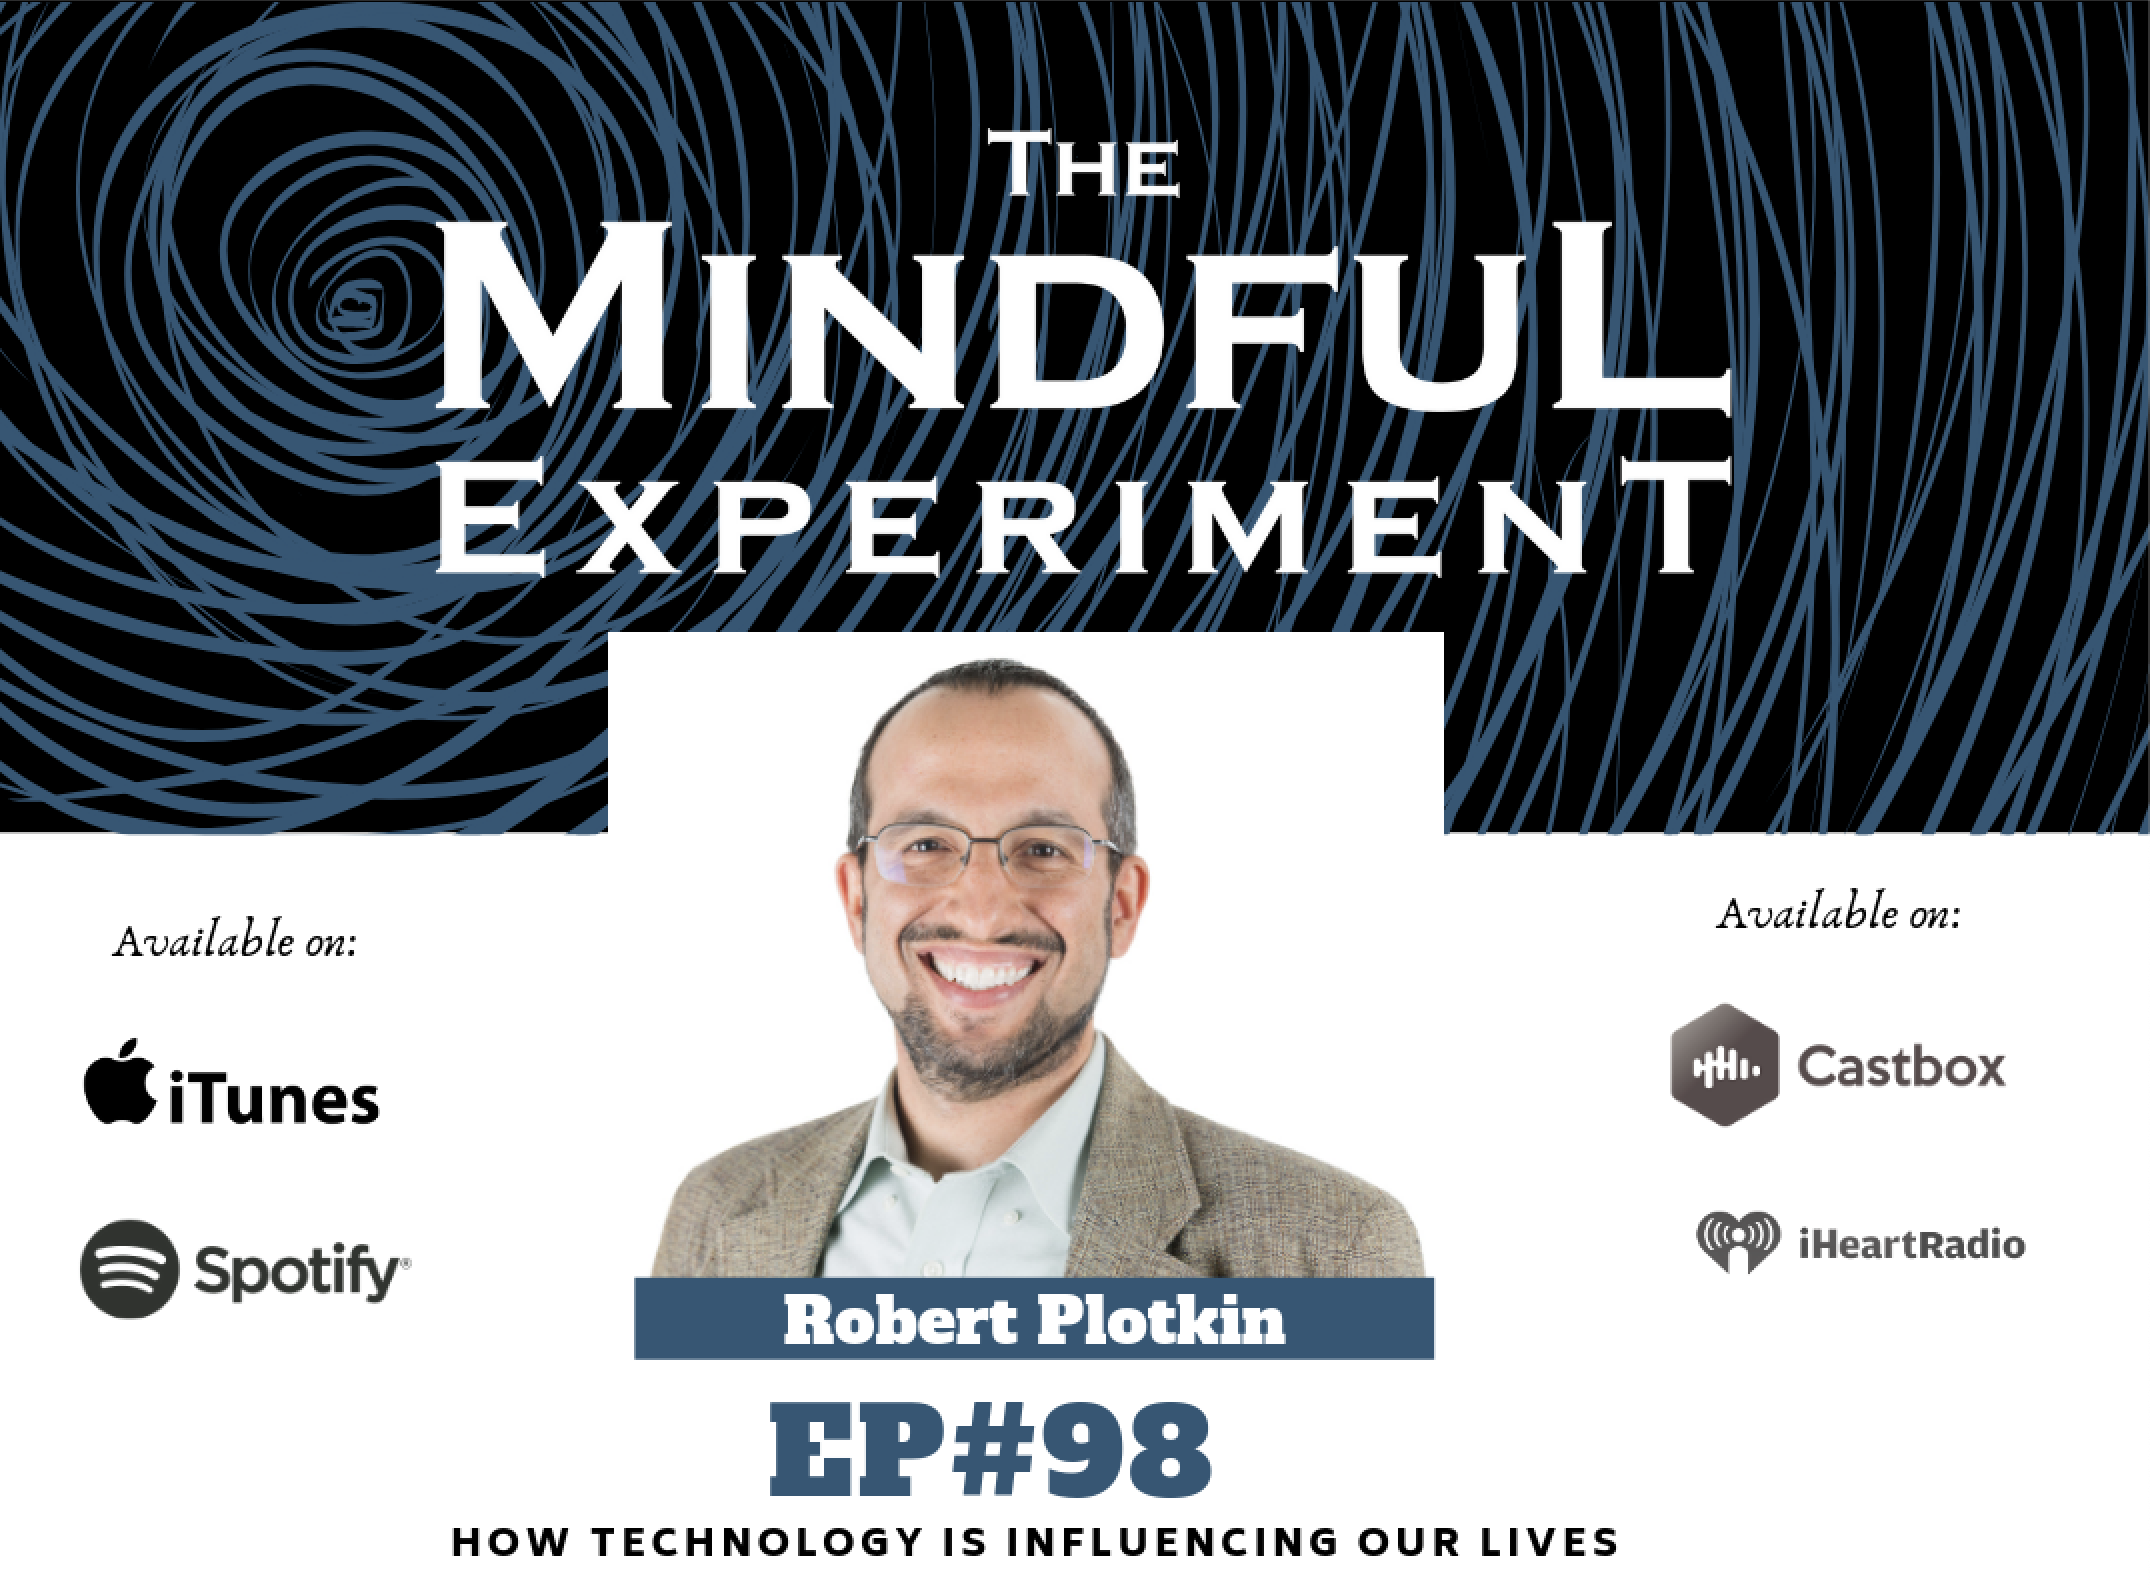 EP#98 - How Tech is Influencing Our Lives, Part I